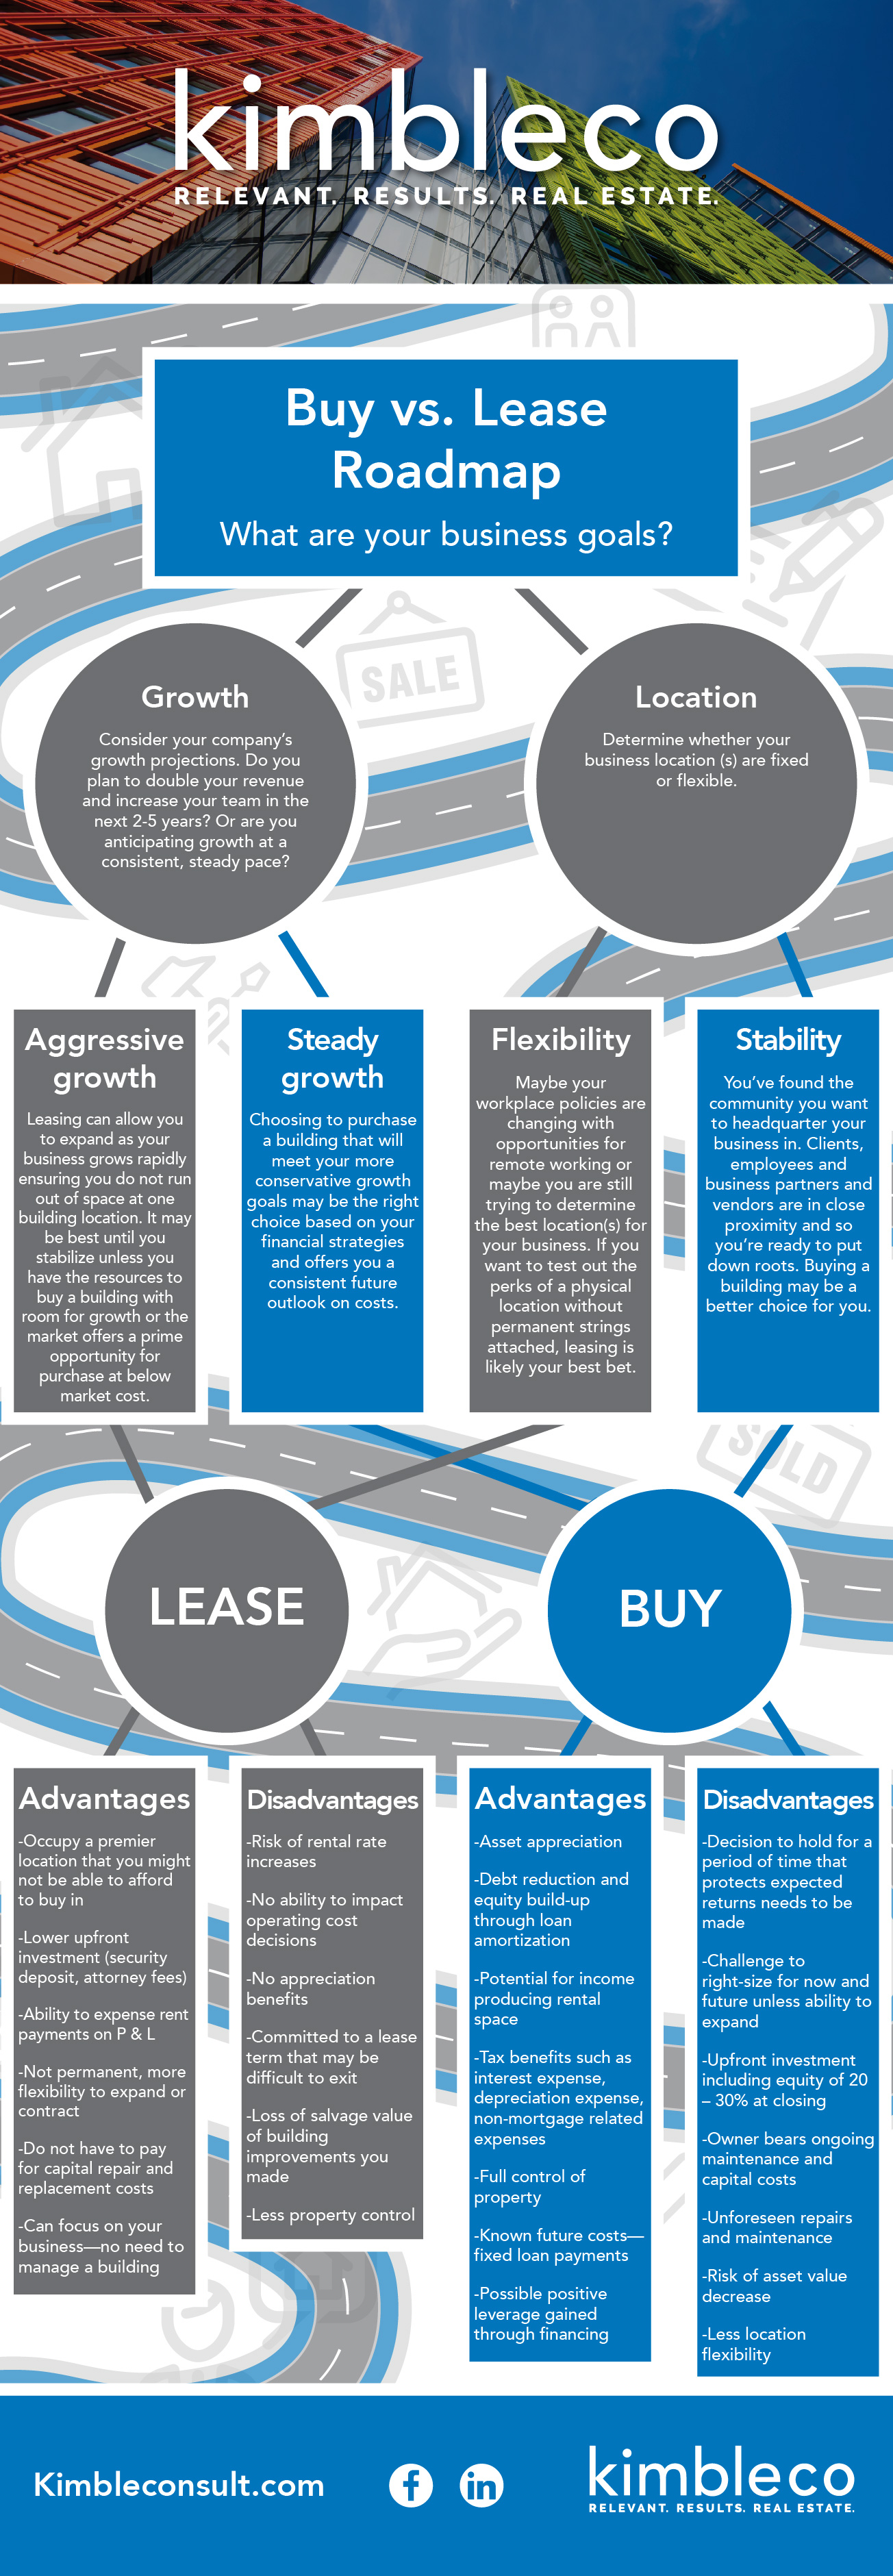 Buy vs Lease Infographic_Final-01.jpg